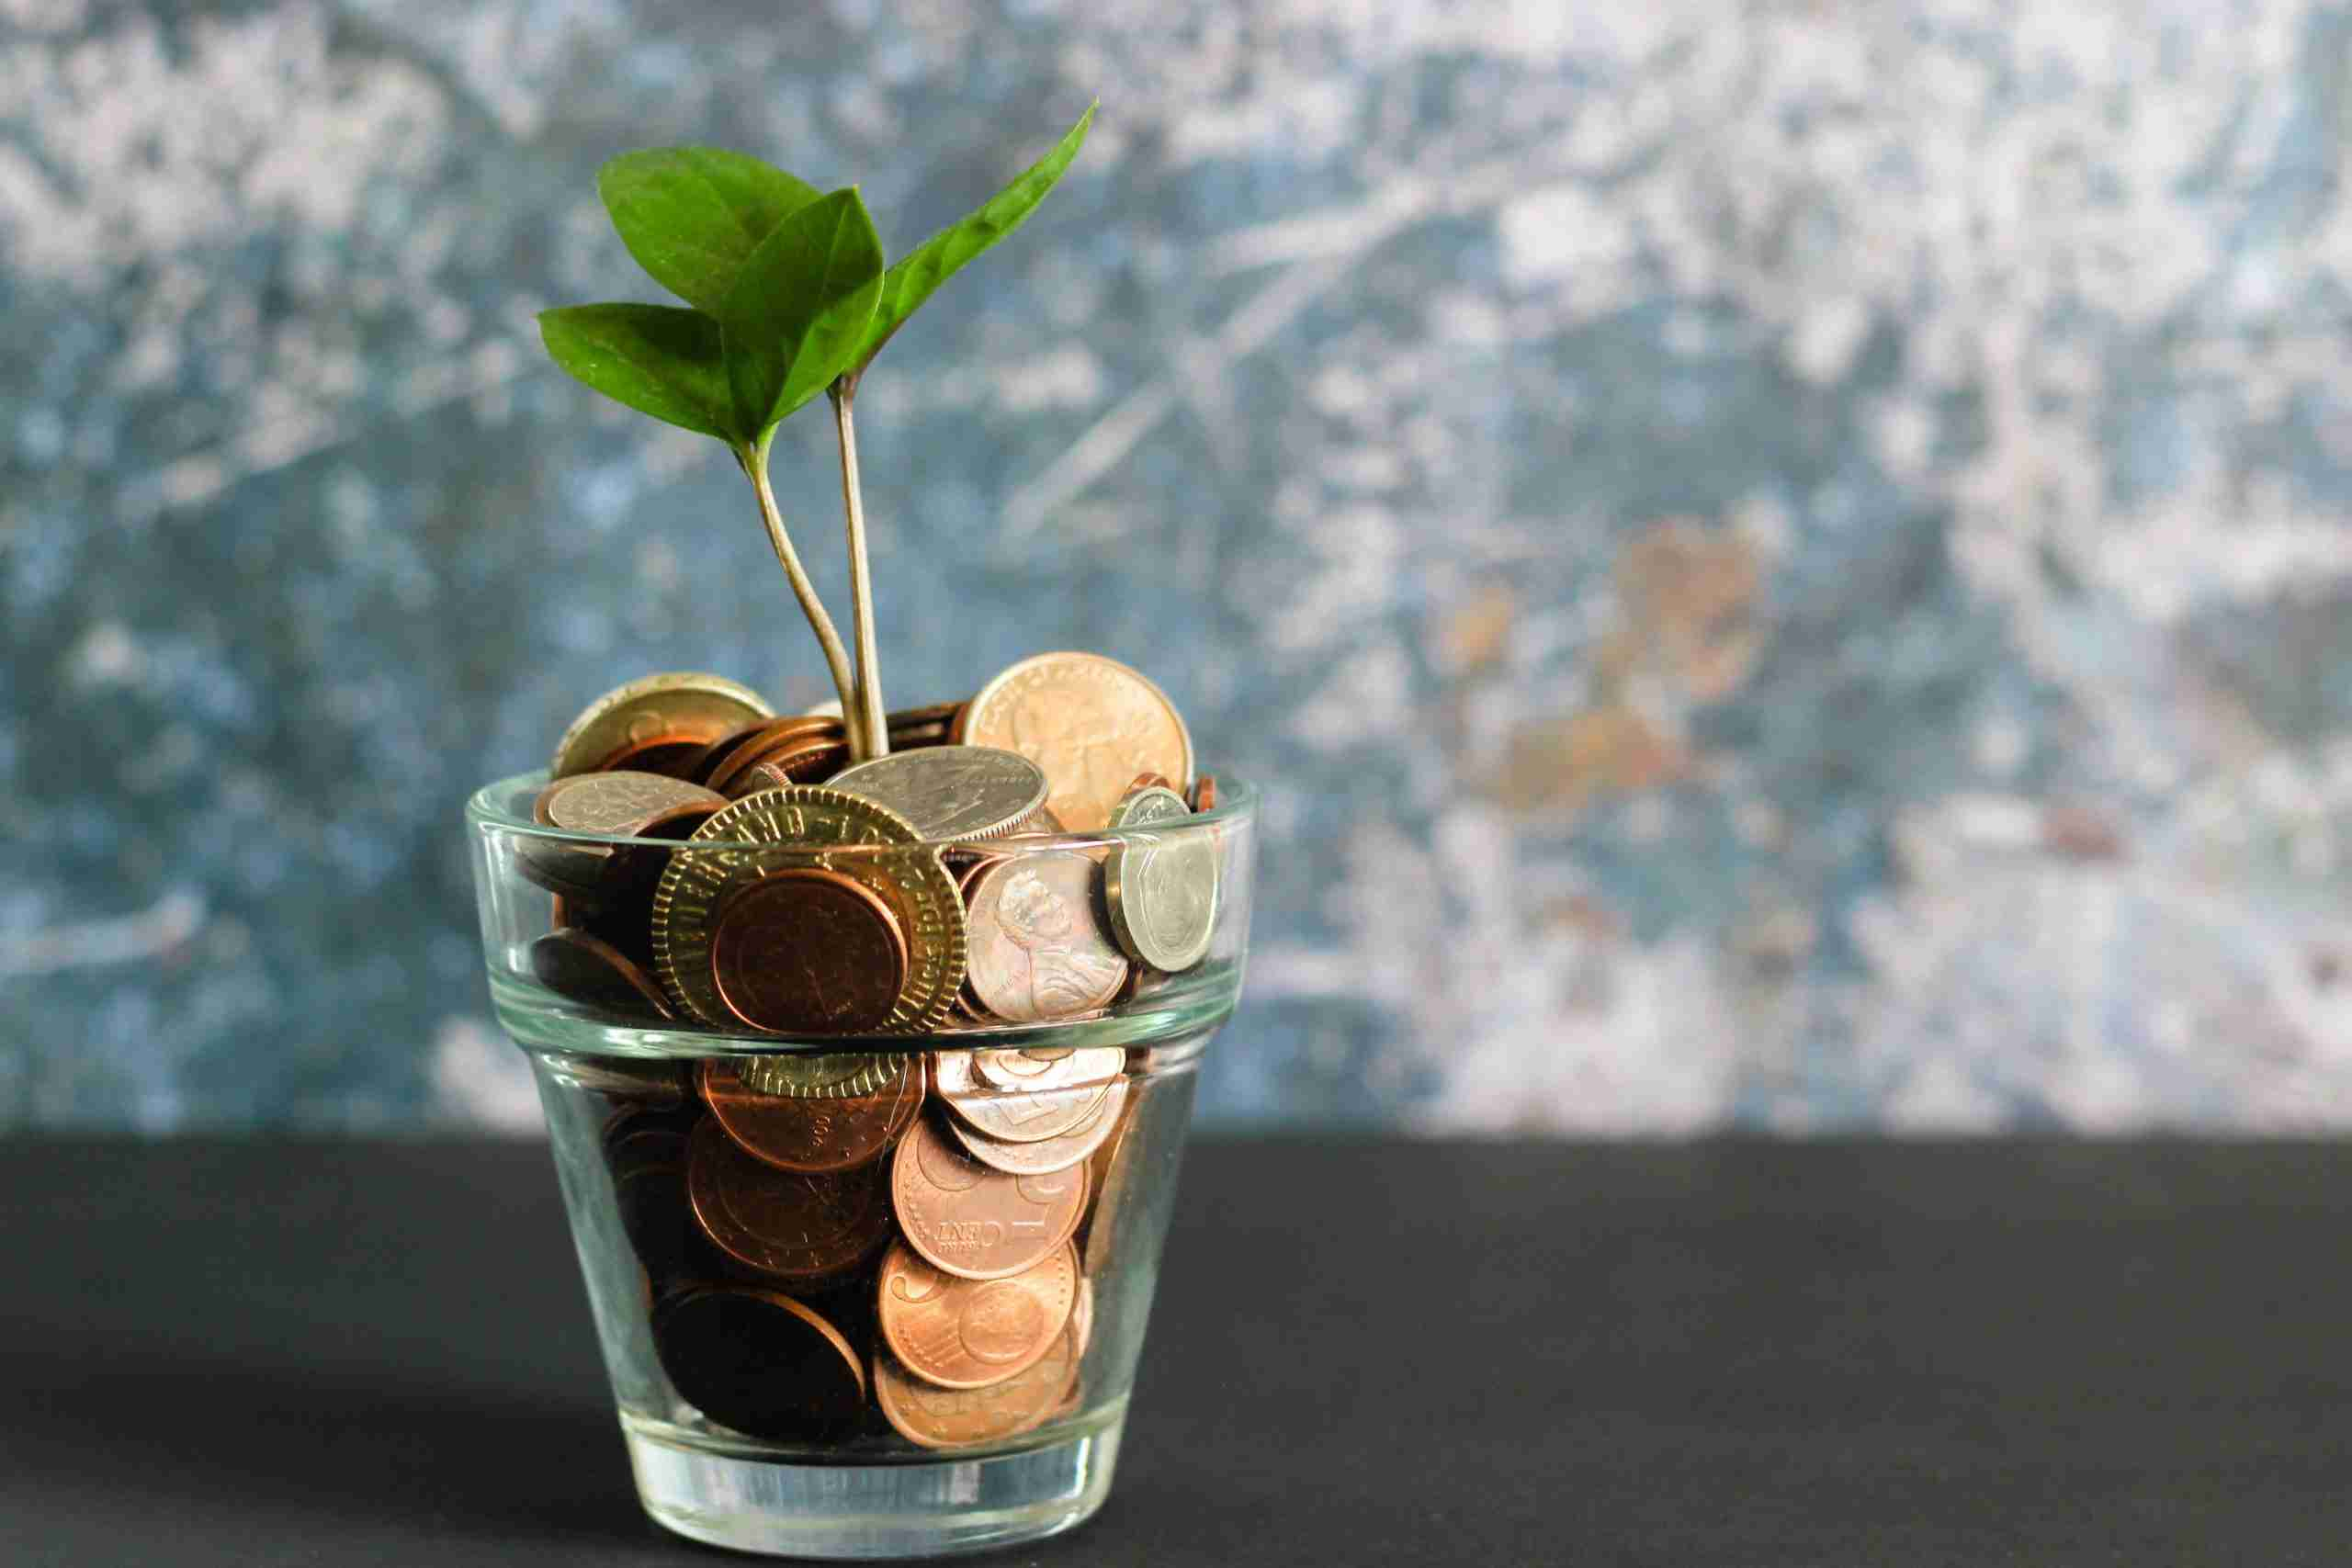 How do I track my money? Simple ways to understand what is going on while also improving your spending habits.